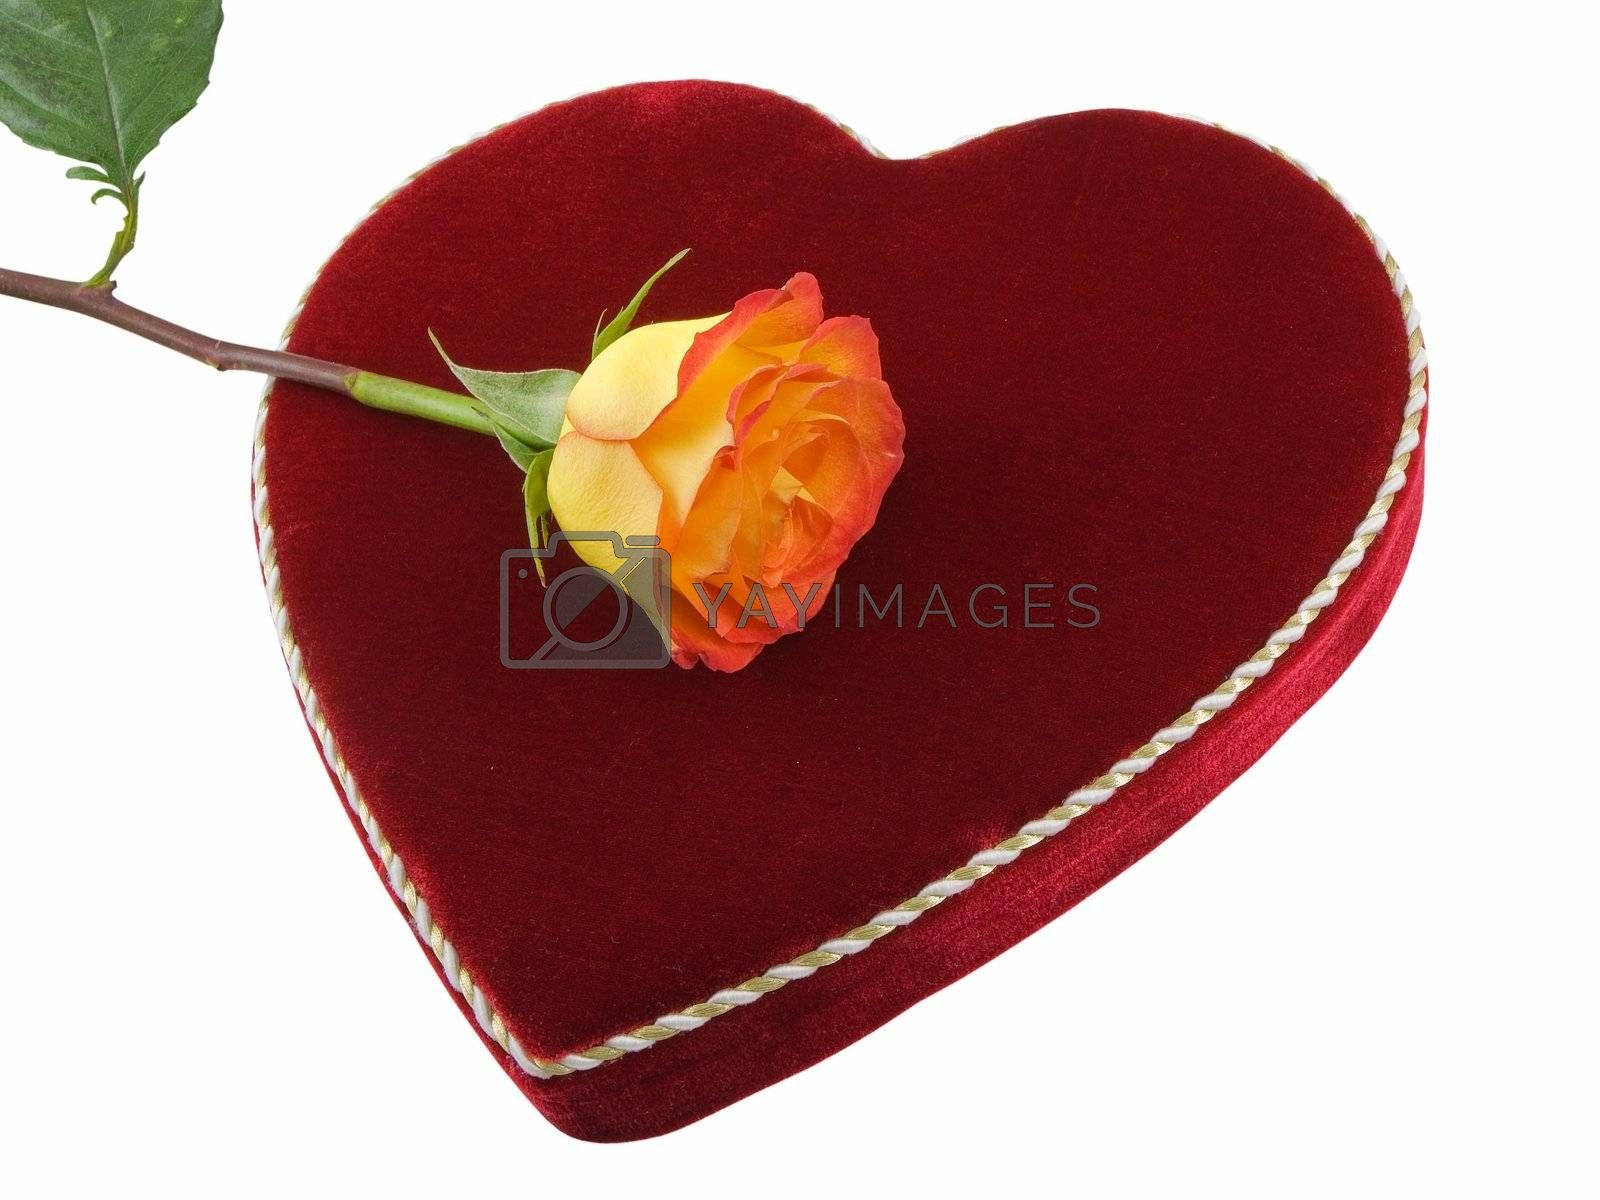 Valentines chocolates box with orange rose, isolated on white